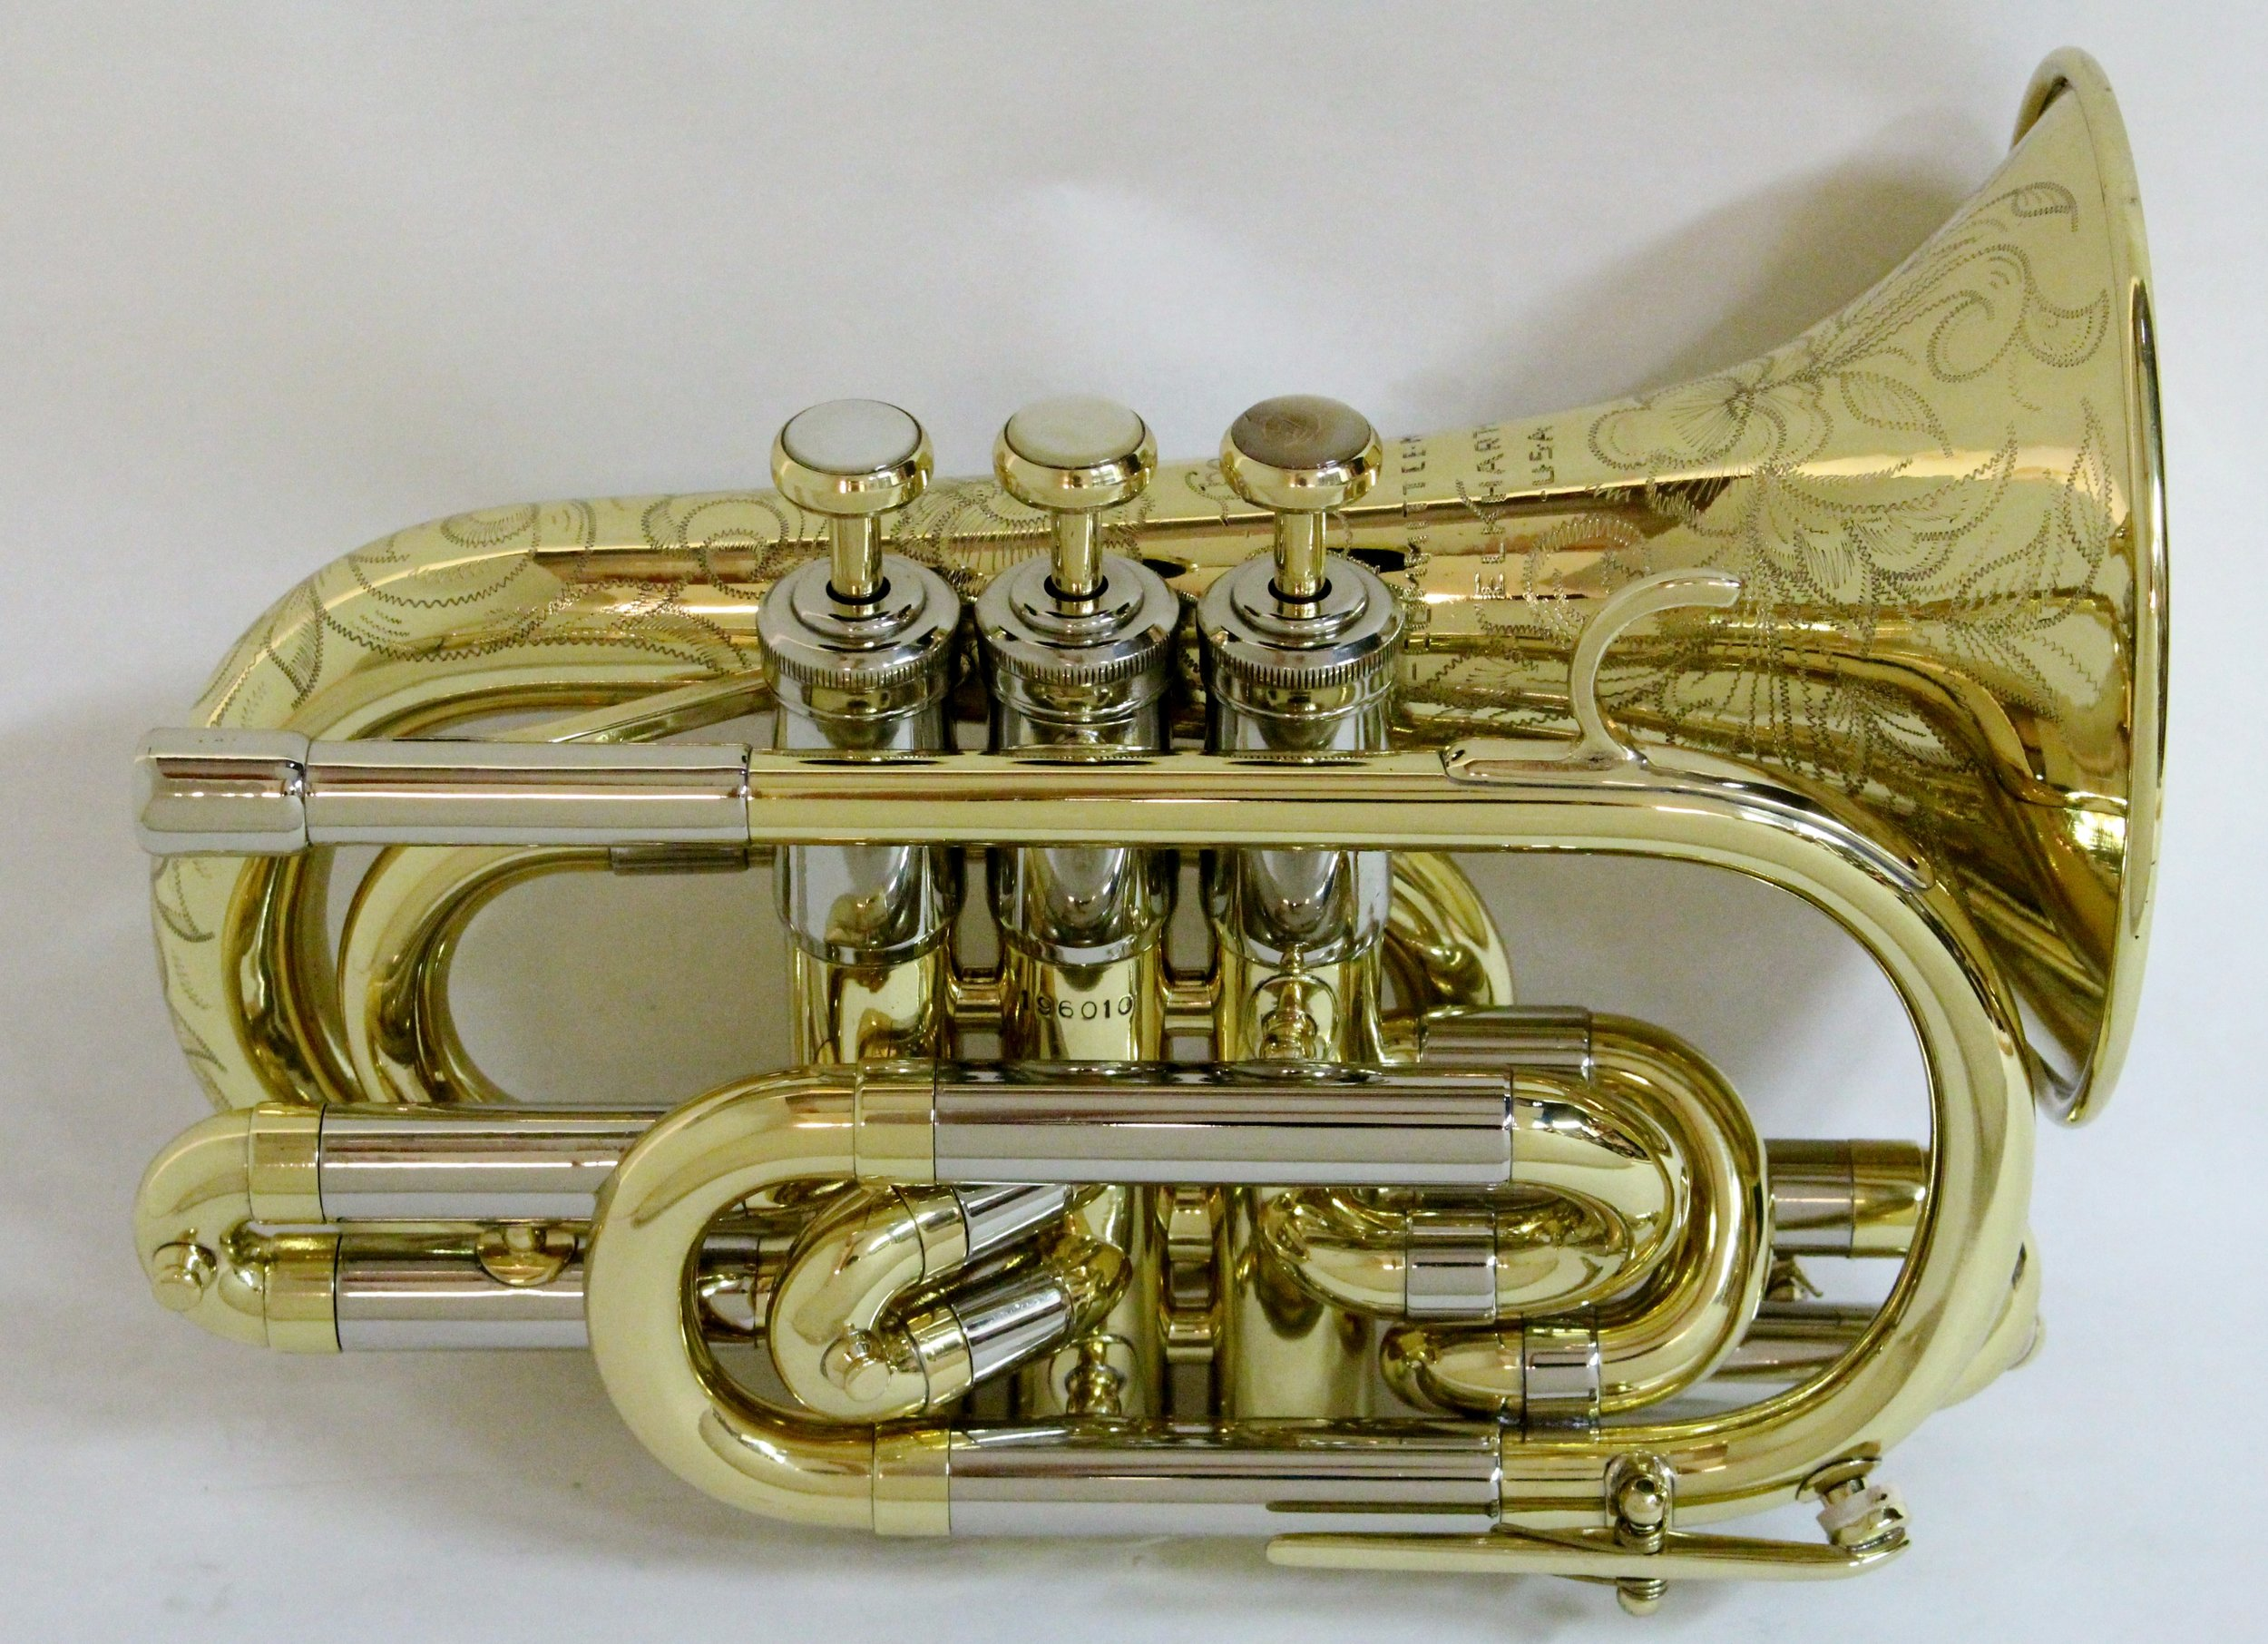 Martin Committee Pocket Trumpet